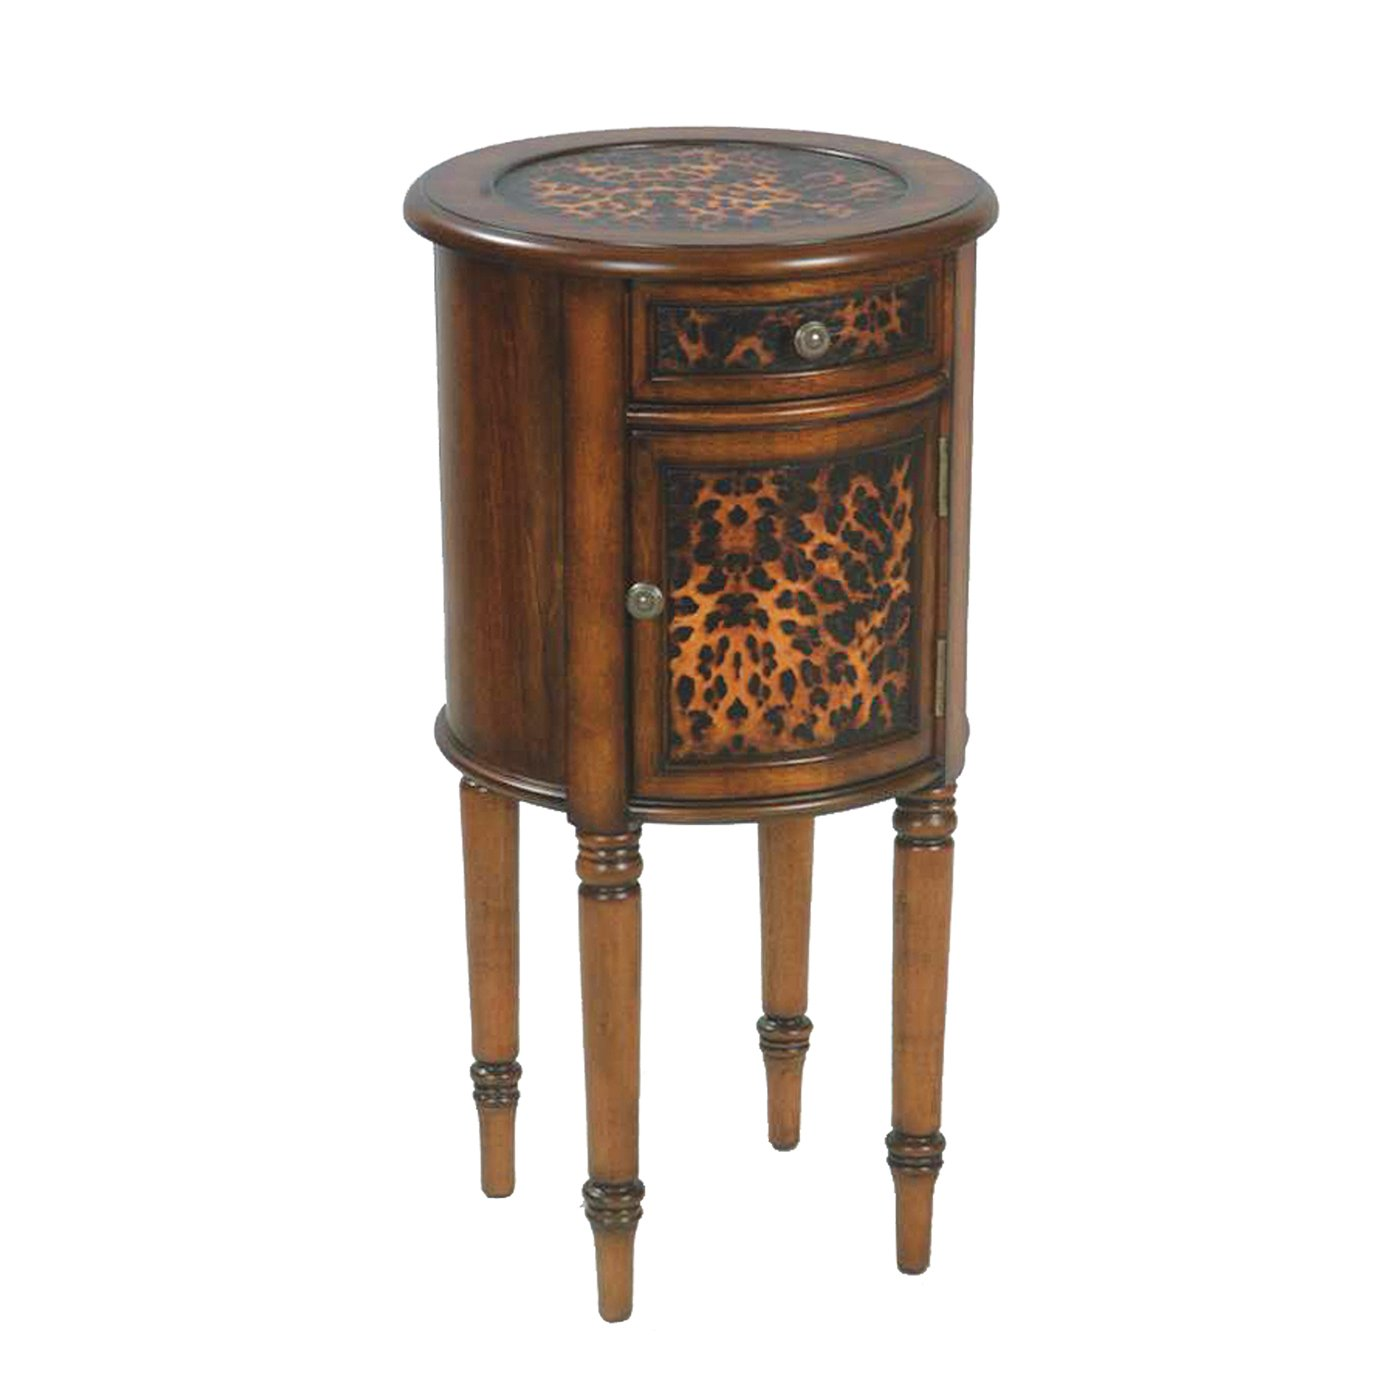 avani mango wood drum accent table pier imports triangle sterling industries leopard end atg orange bedside lamp metal chair pedestal home goods dining room phone stand small